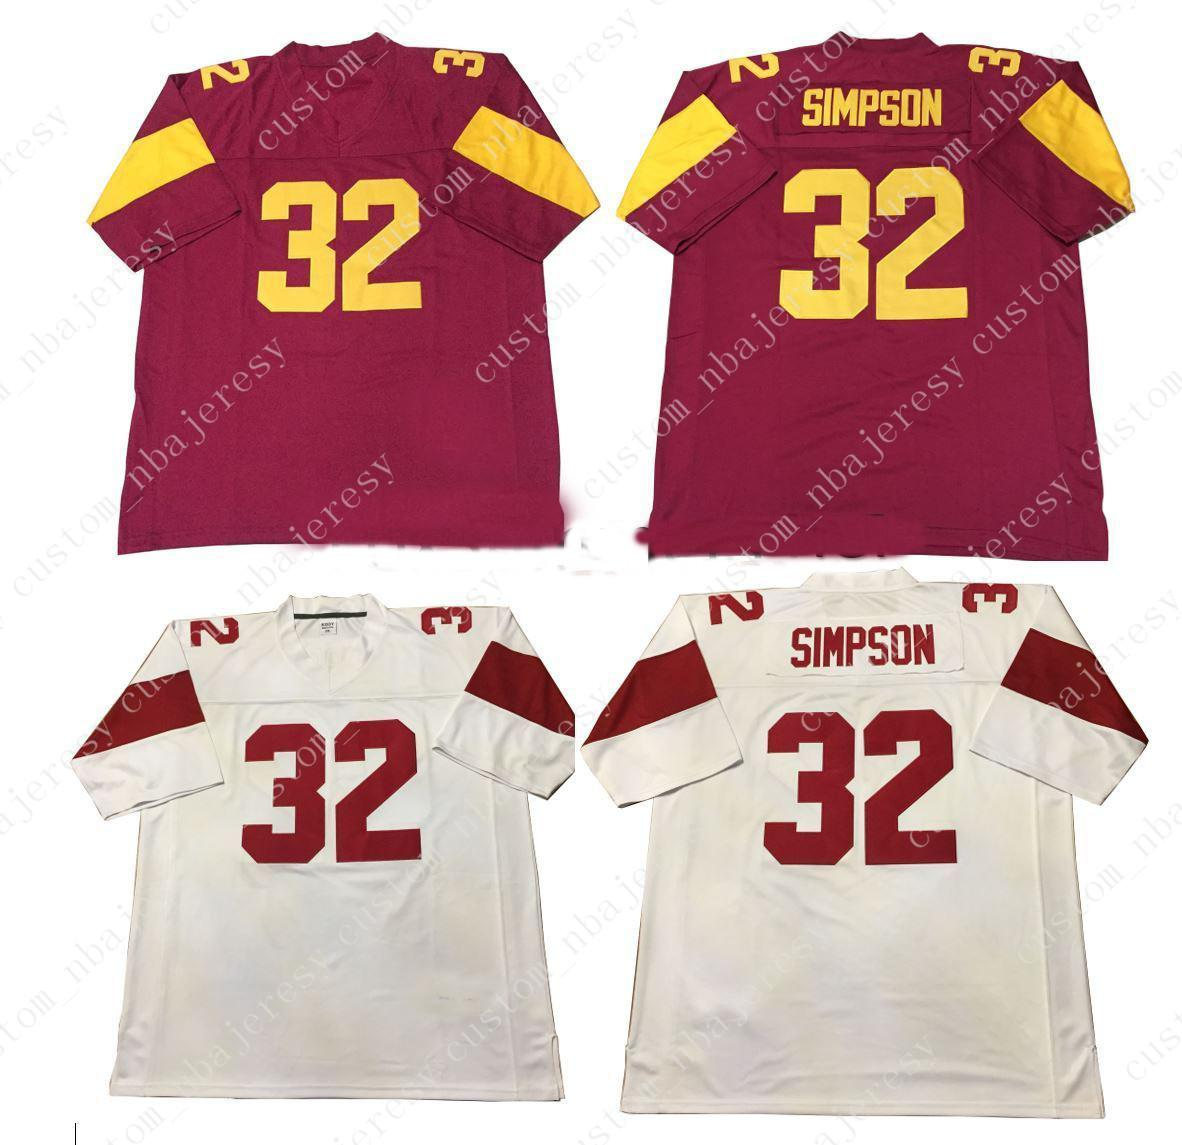 reputable site 0a57a c0d99 Cheap custom OJ Simpson USC Trojans Football Jersey #32 College Football  Customized Any name number Stitched Jersey XS-5XL